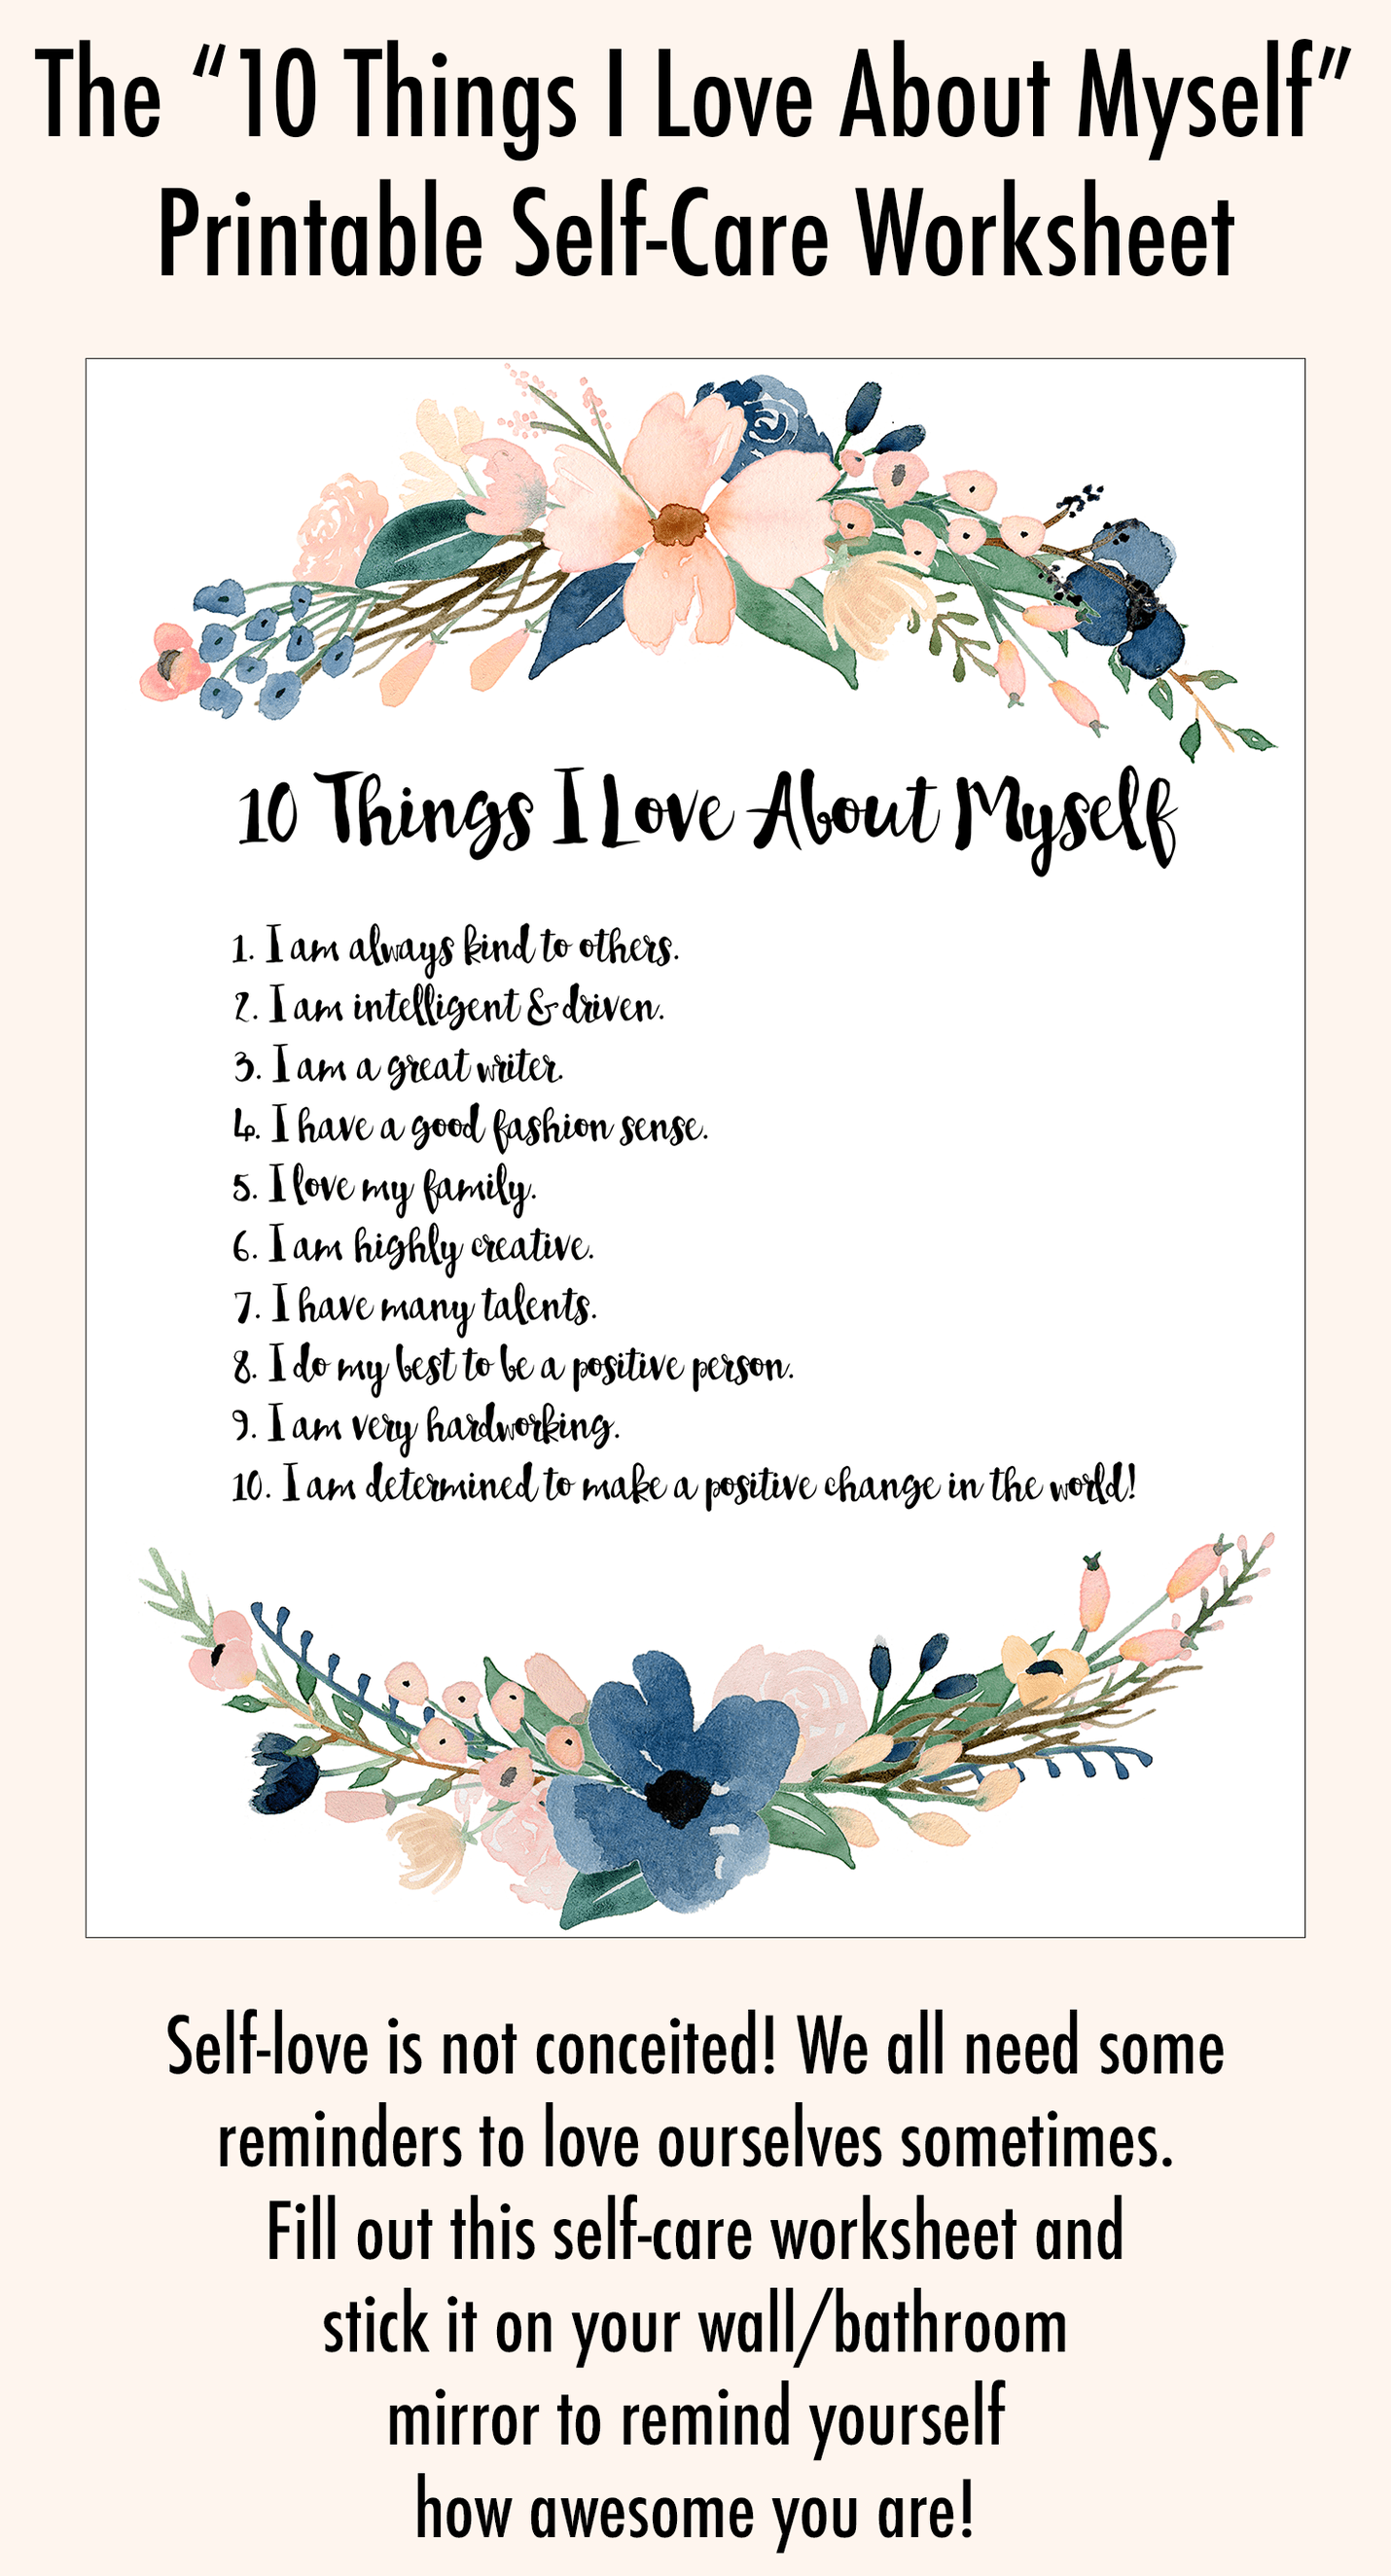 Self Love Exercise 10 Things I Love About Myself Printable Worksheet